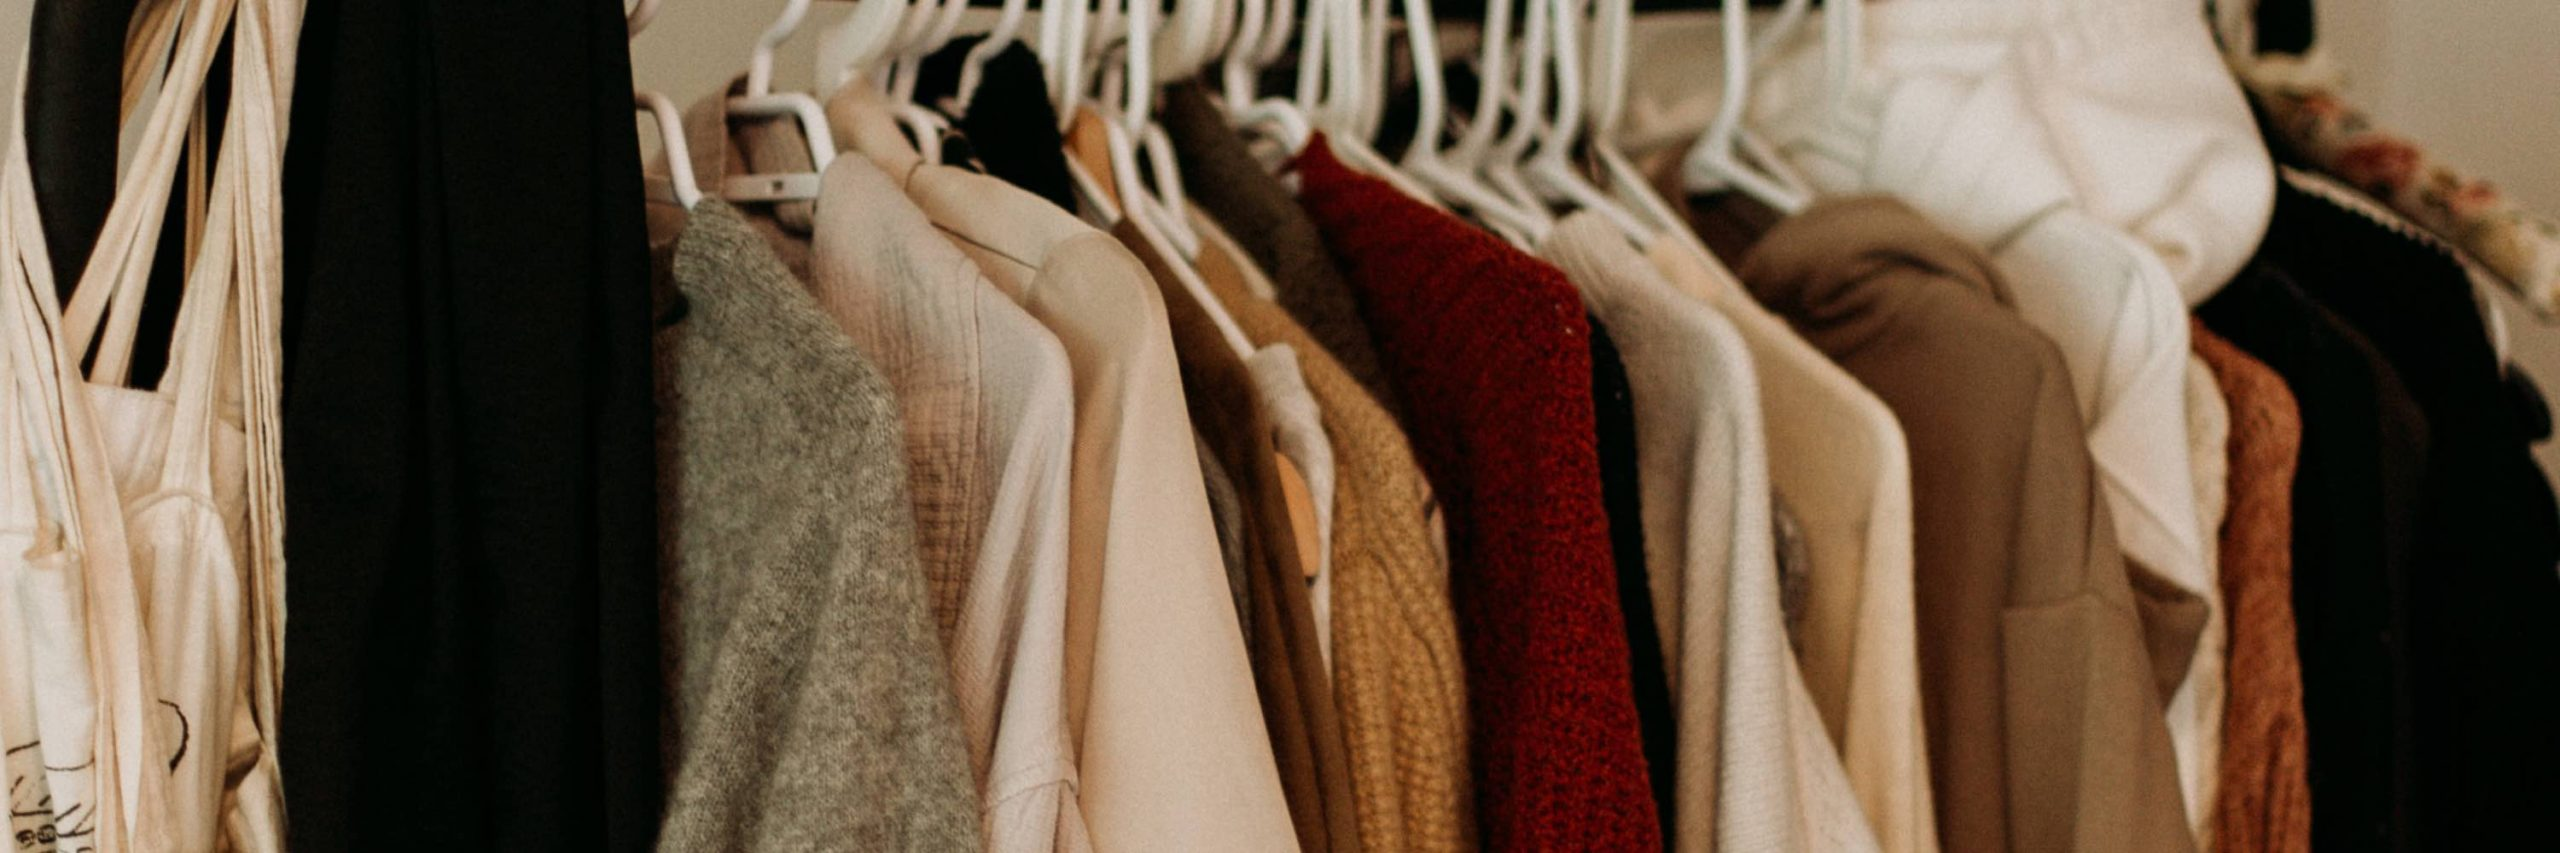 Sweaters on rack demonstrating loungewear. Image from Priscilla du Preez on Unsplash.